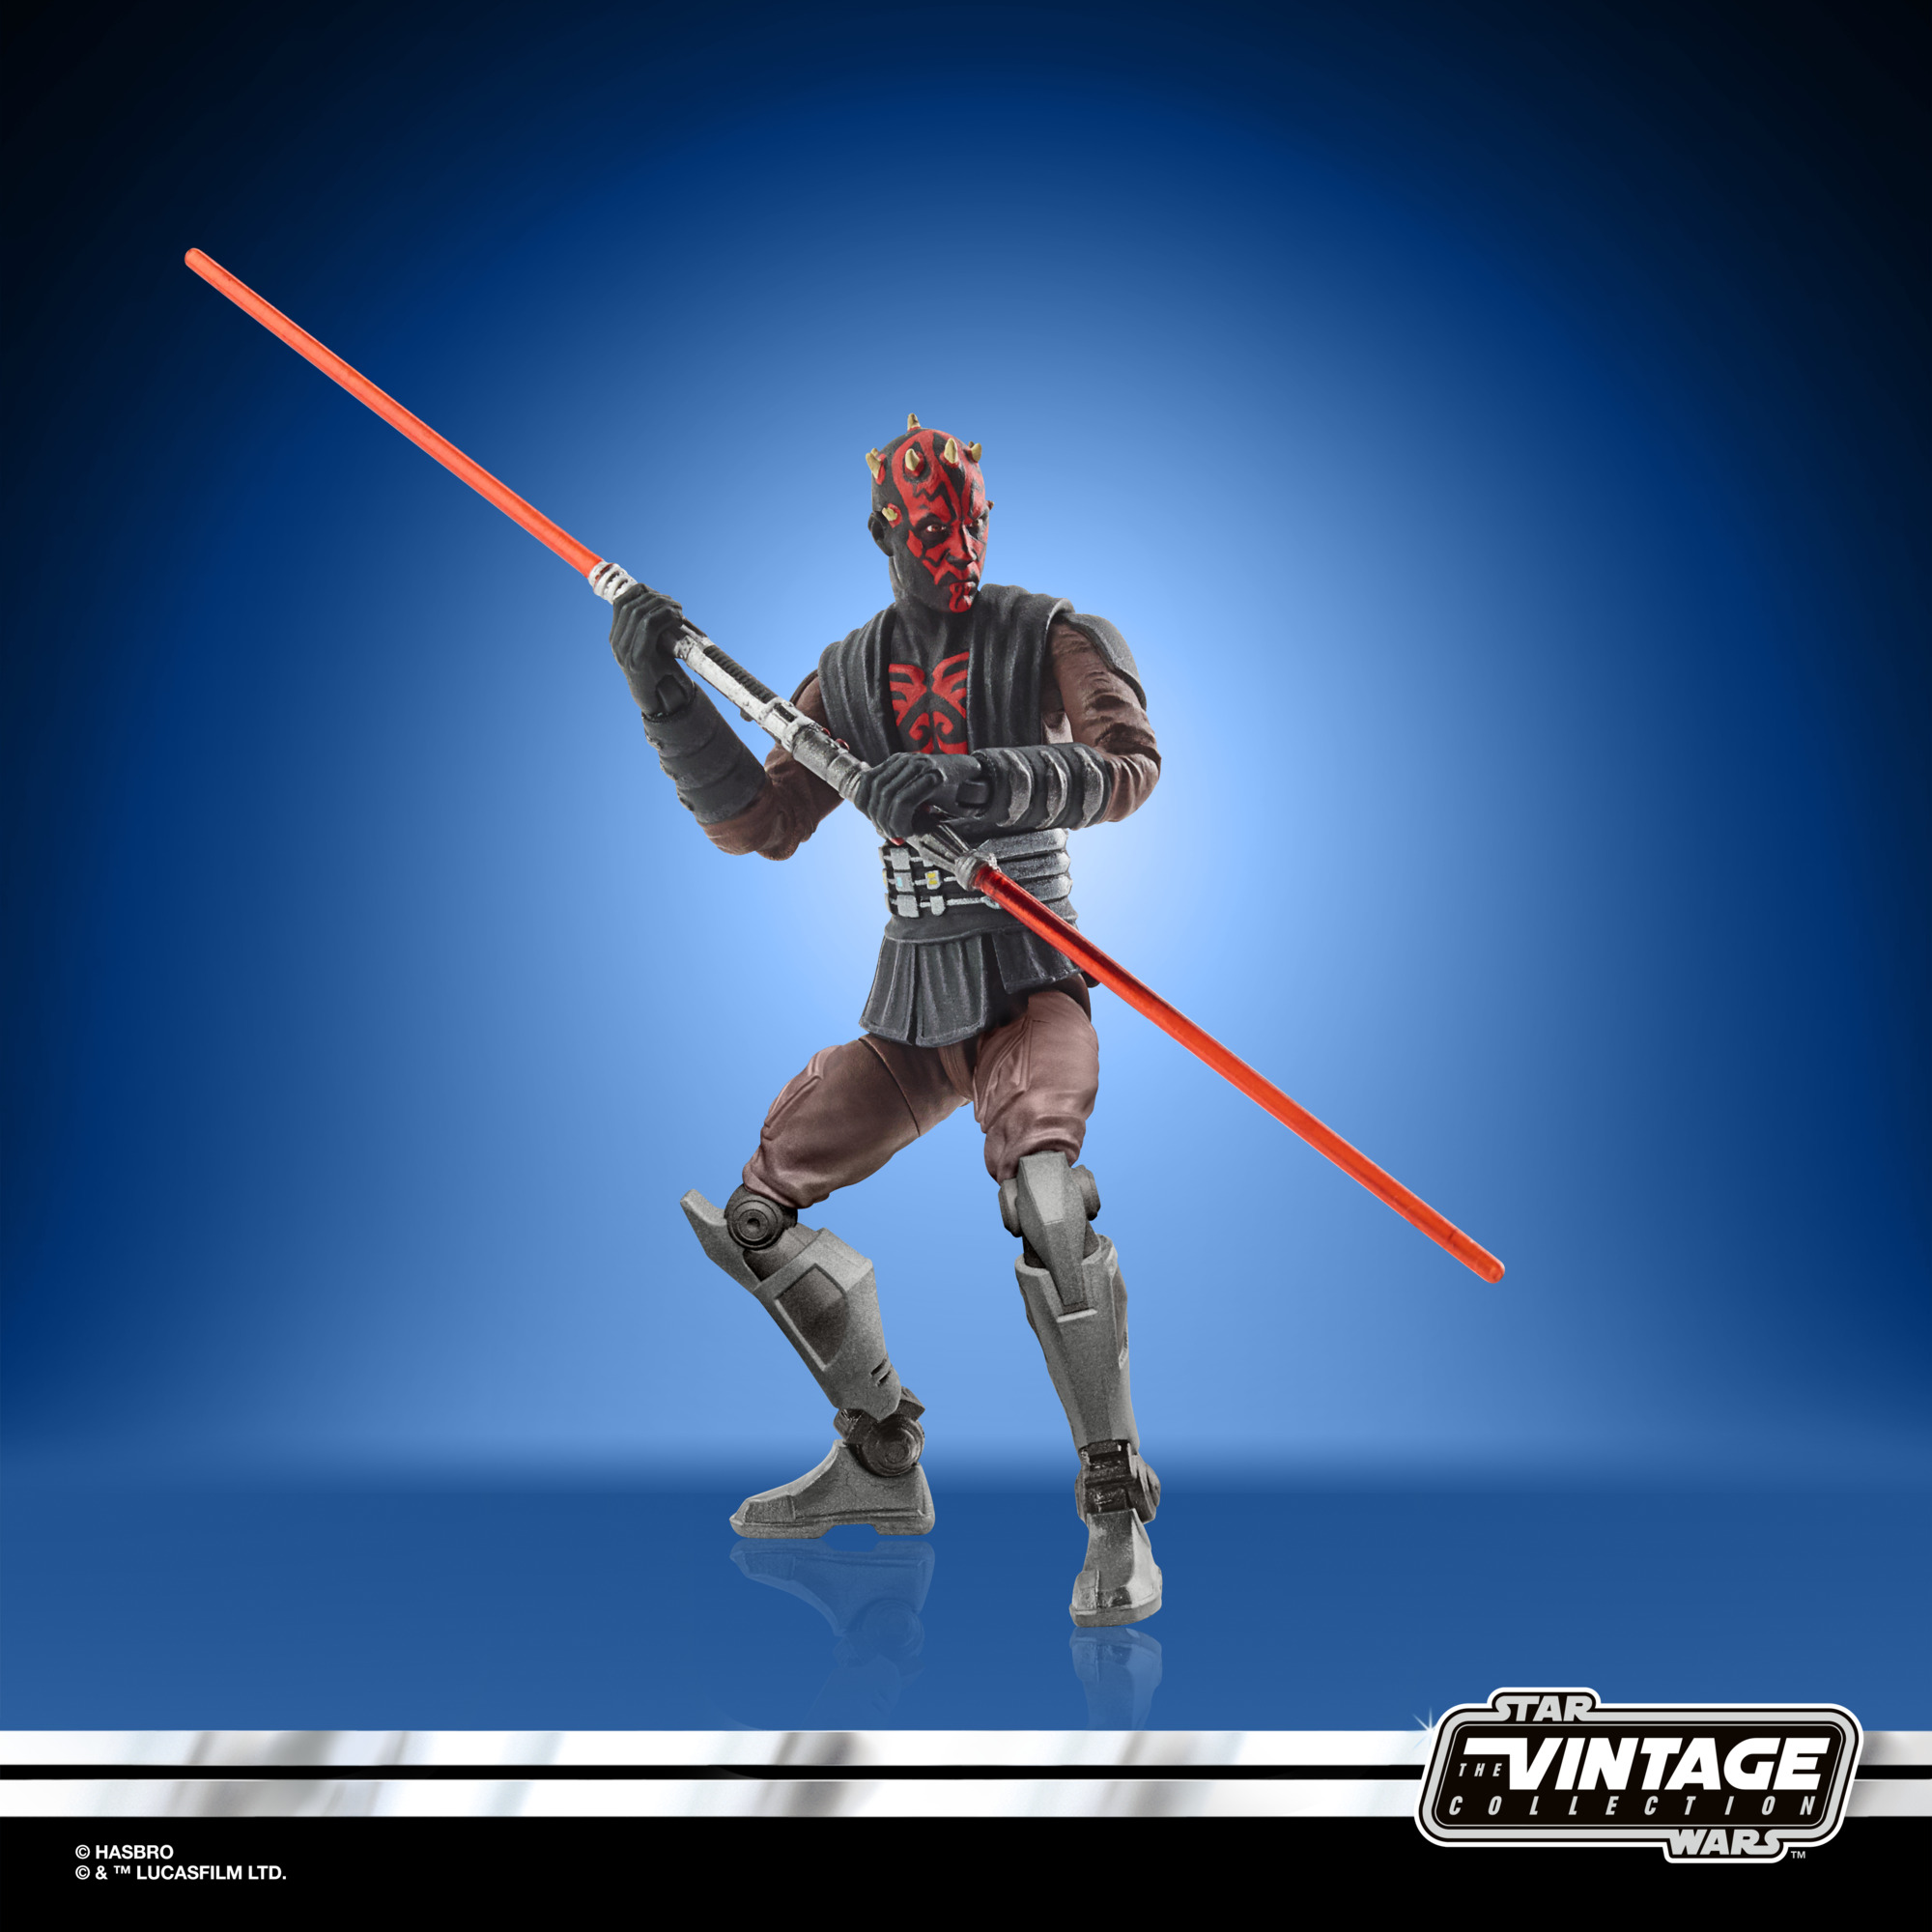 STAR WARS THE VINTAGE COLLECTION 3.75-INCH DARTH MAUL (MANDALORE) Figure – oop(4)